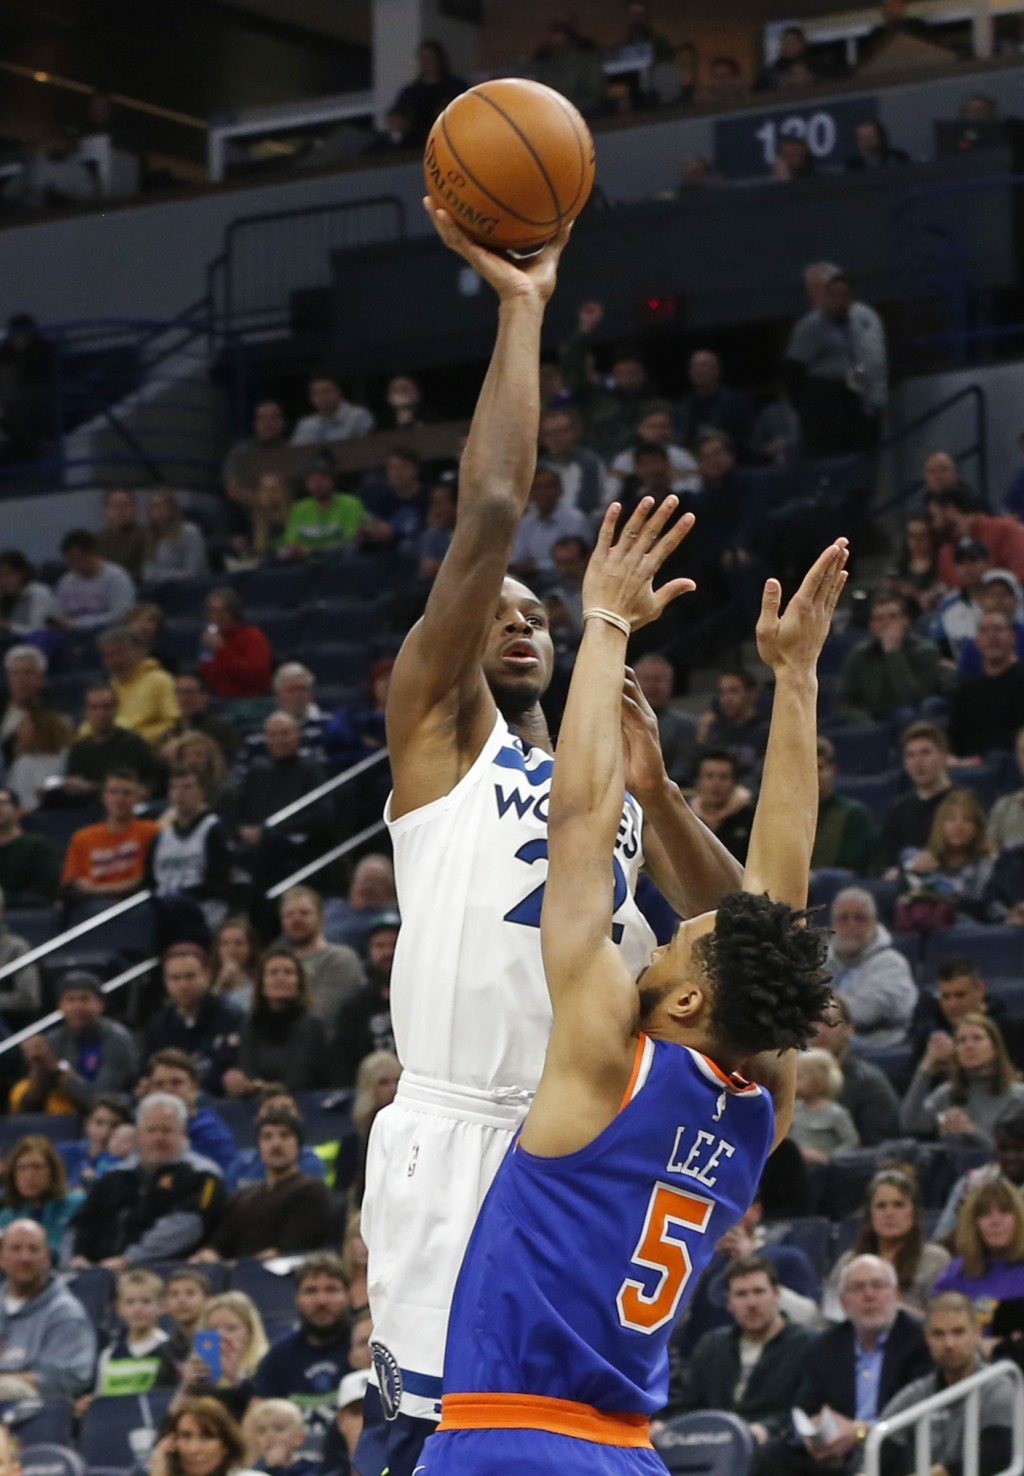 Minnesota Timberwolves' Andrew Wiggins, top, shoots over New York Knicks' Courtney Lee in the first half of an NBA basketball game Friday, Jan. 12, 20